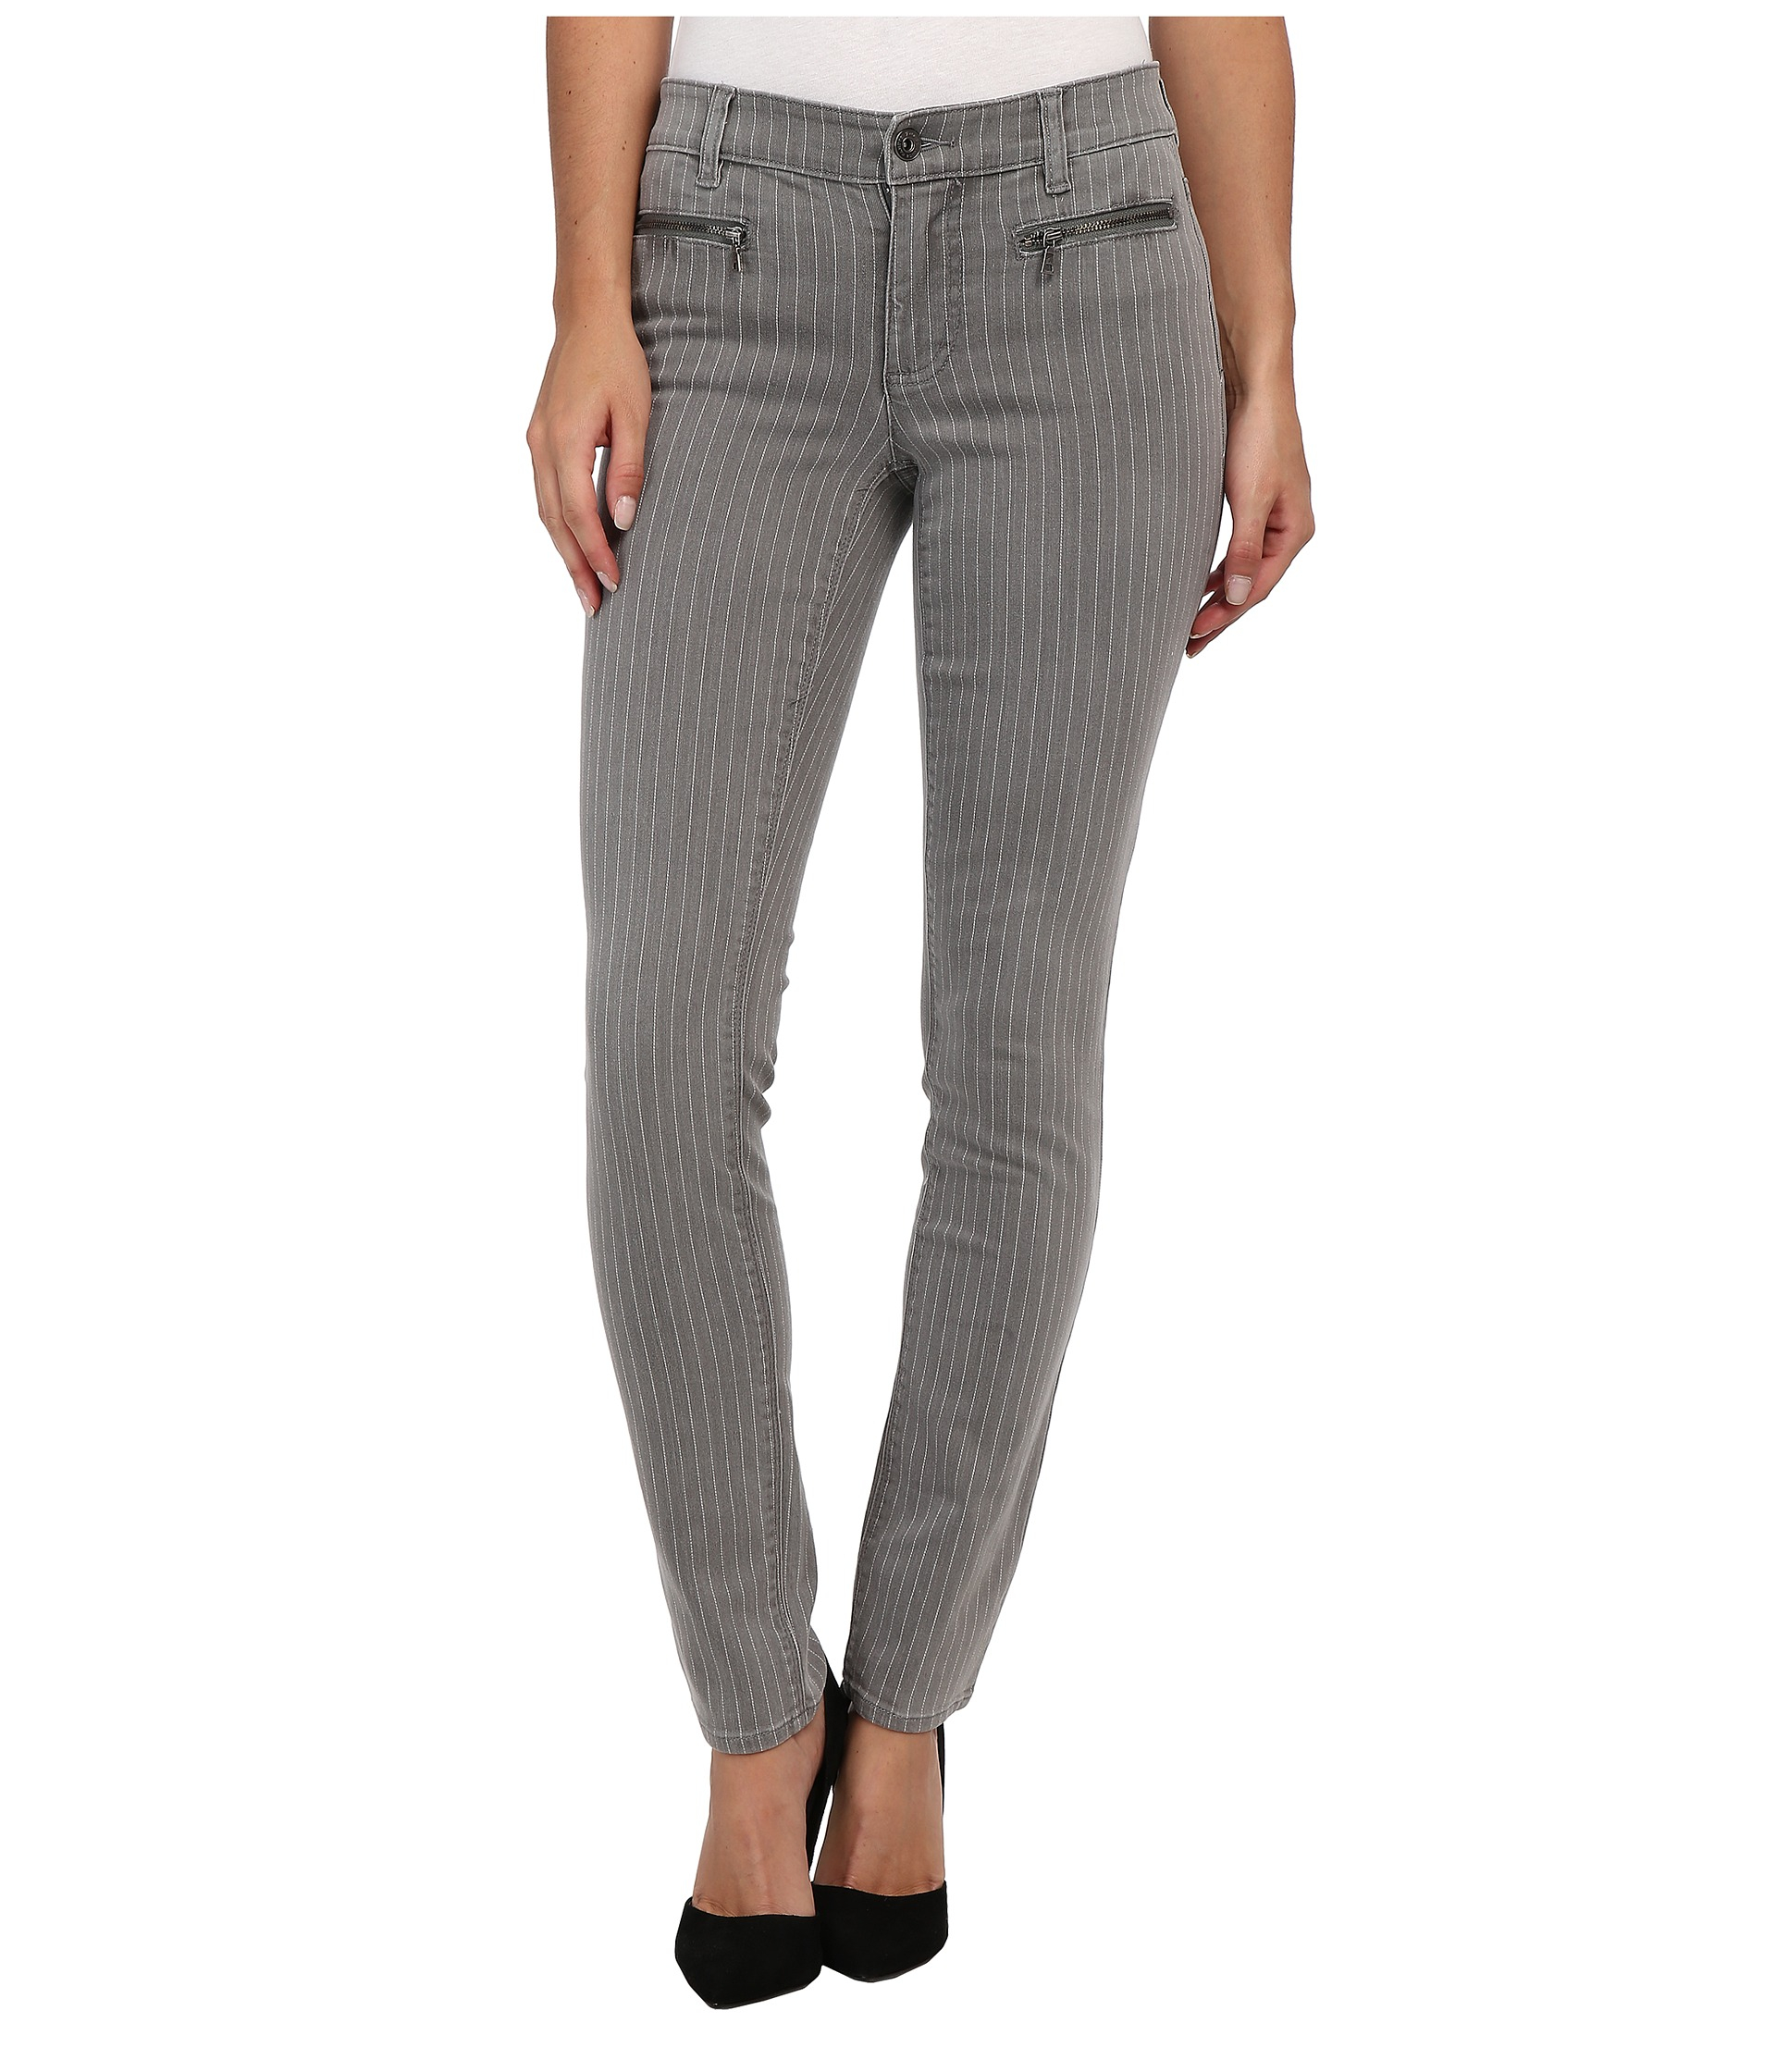 Lyst - Two By Vince Camuto Pinstripe Front Zip Pocket ...